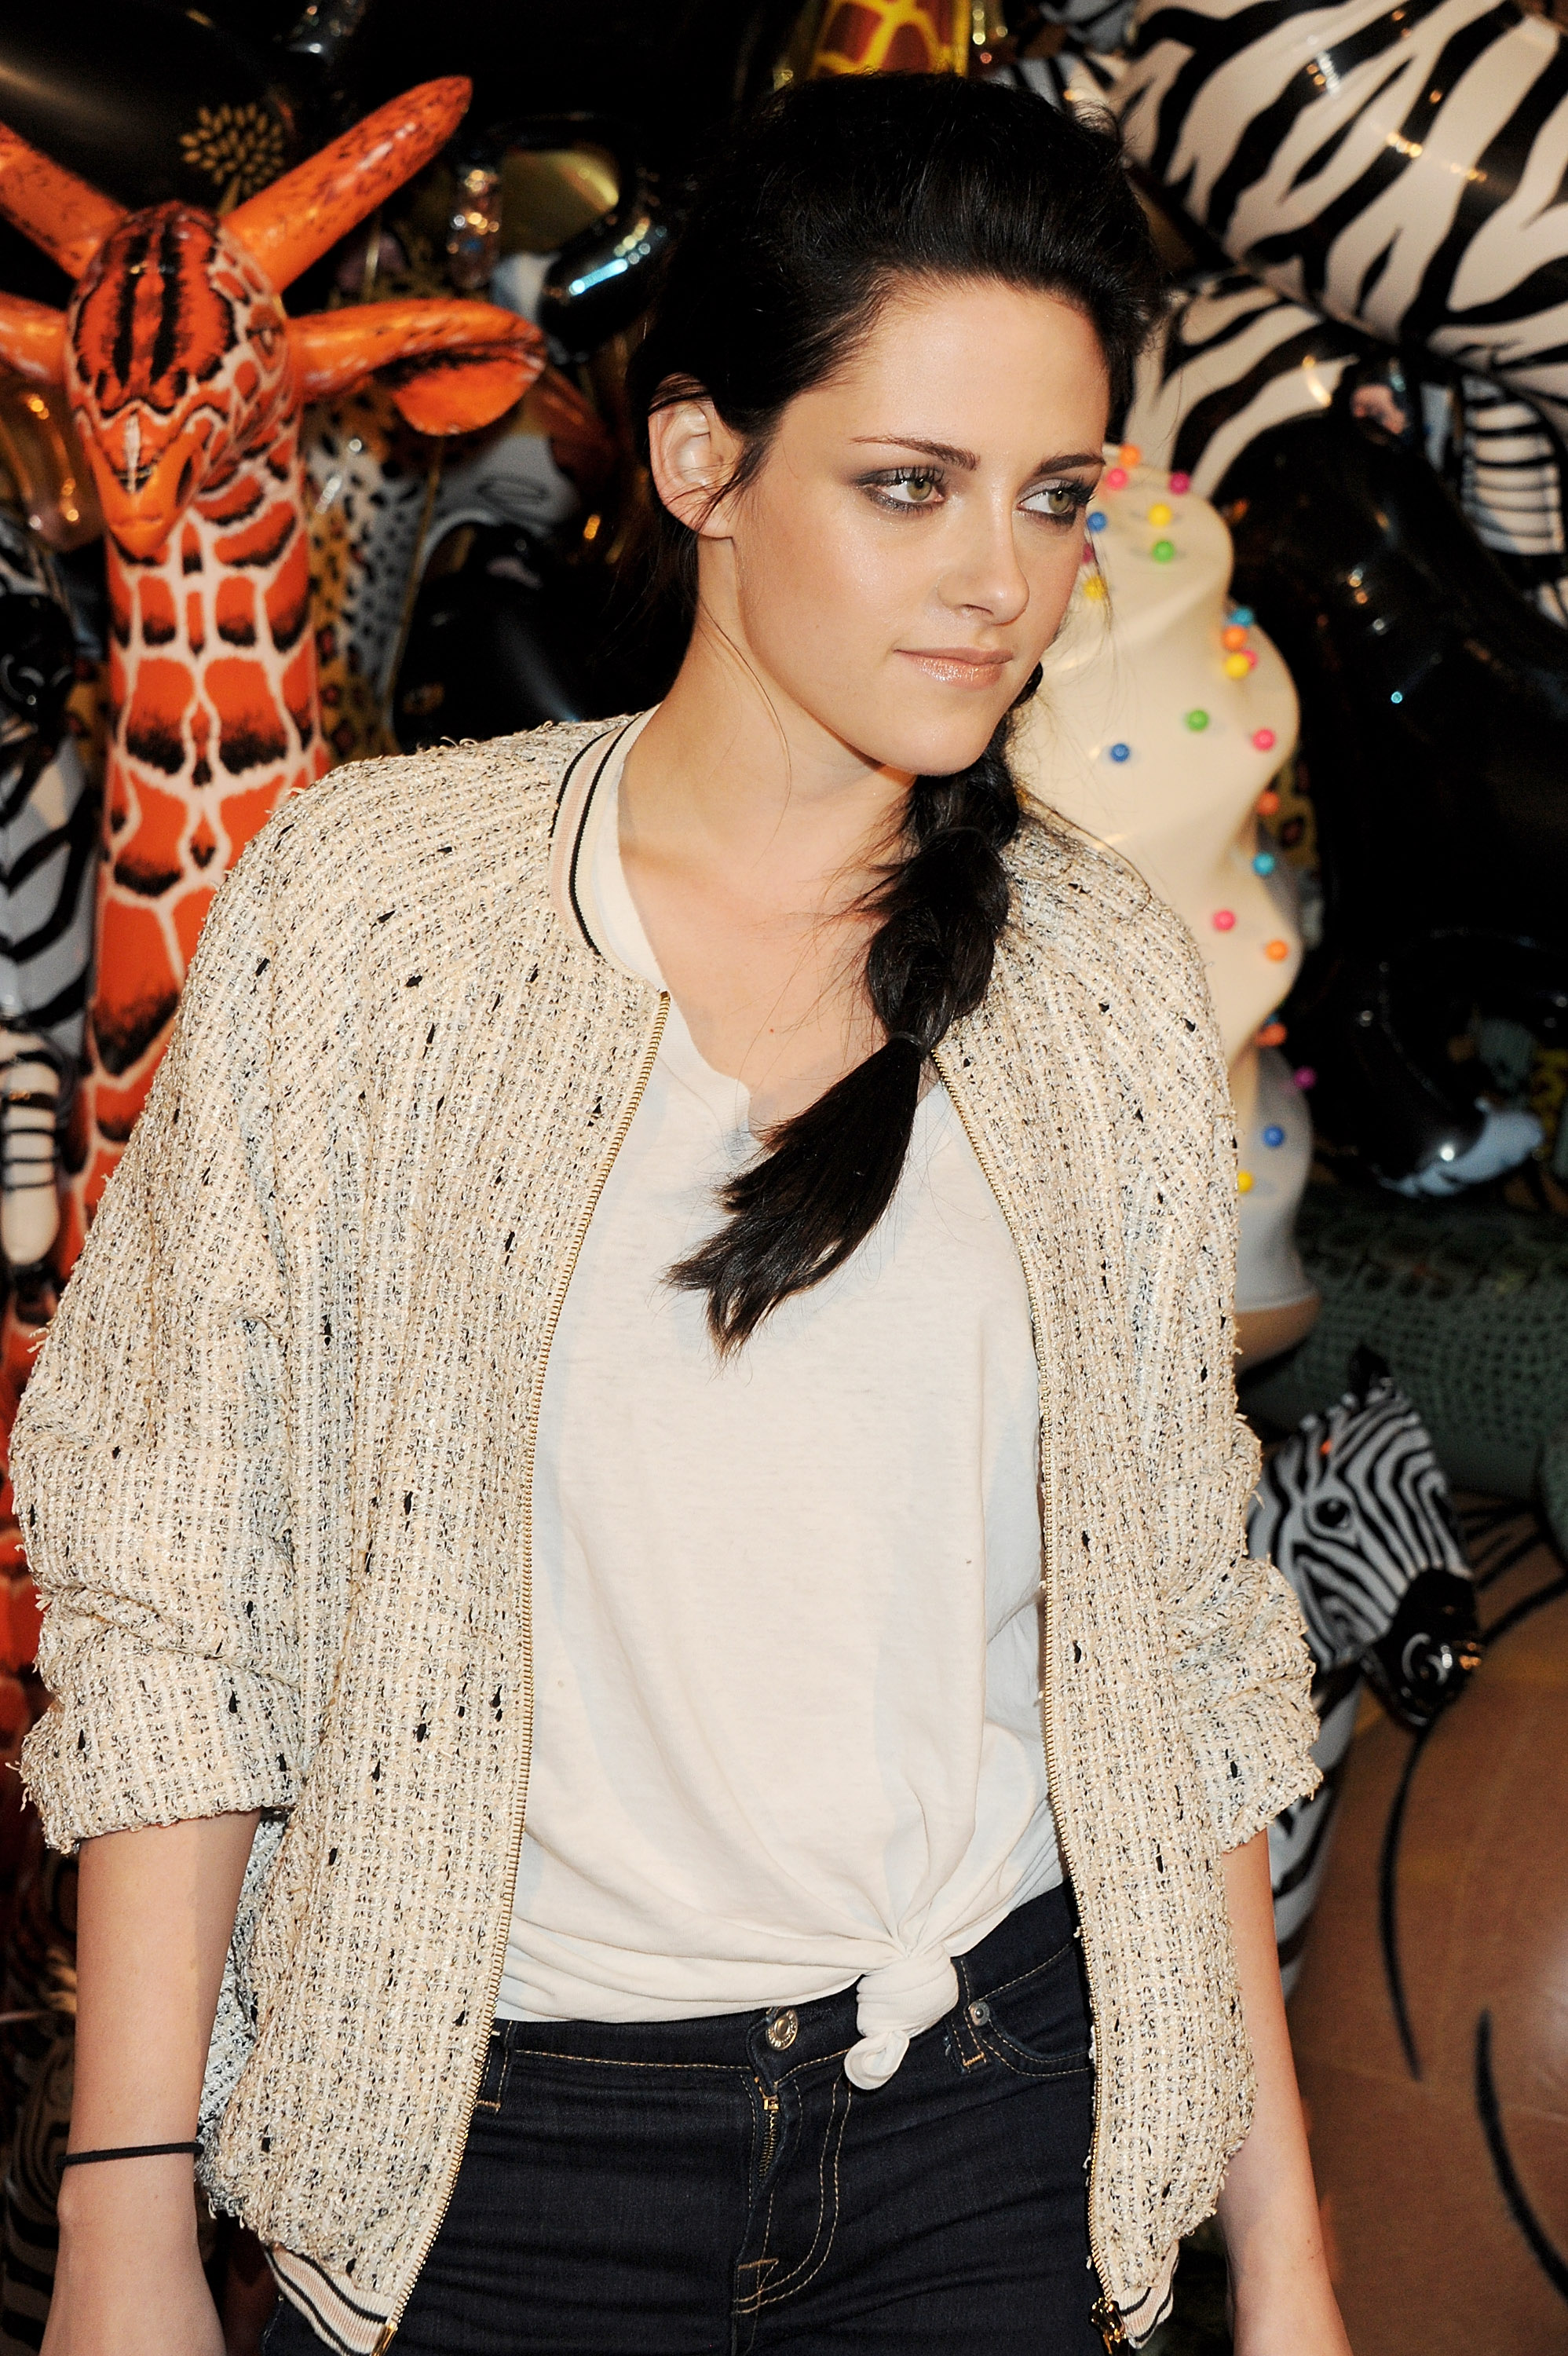 Kristen Stewart at Mulberry afterparty in London.